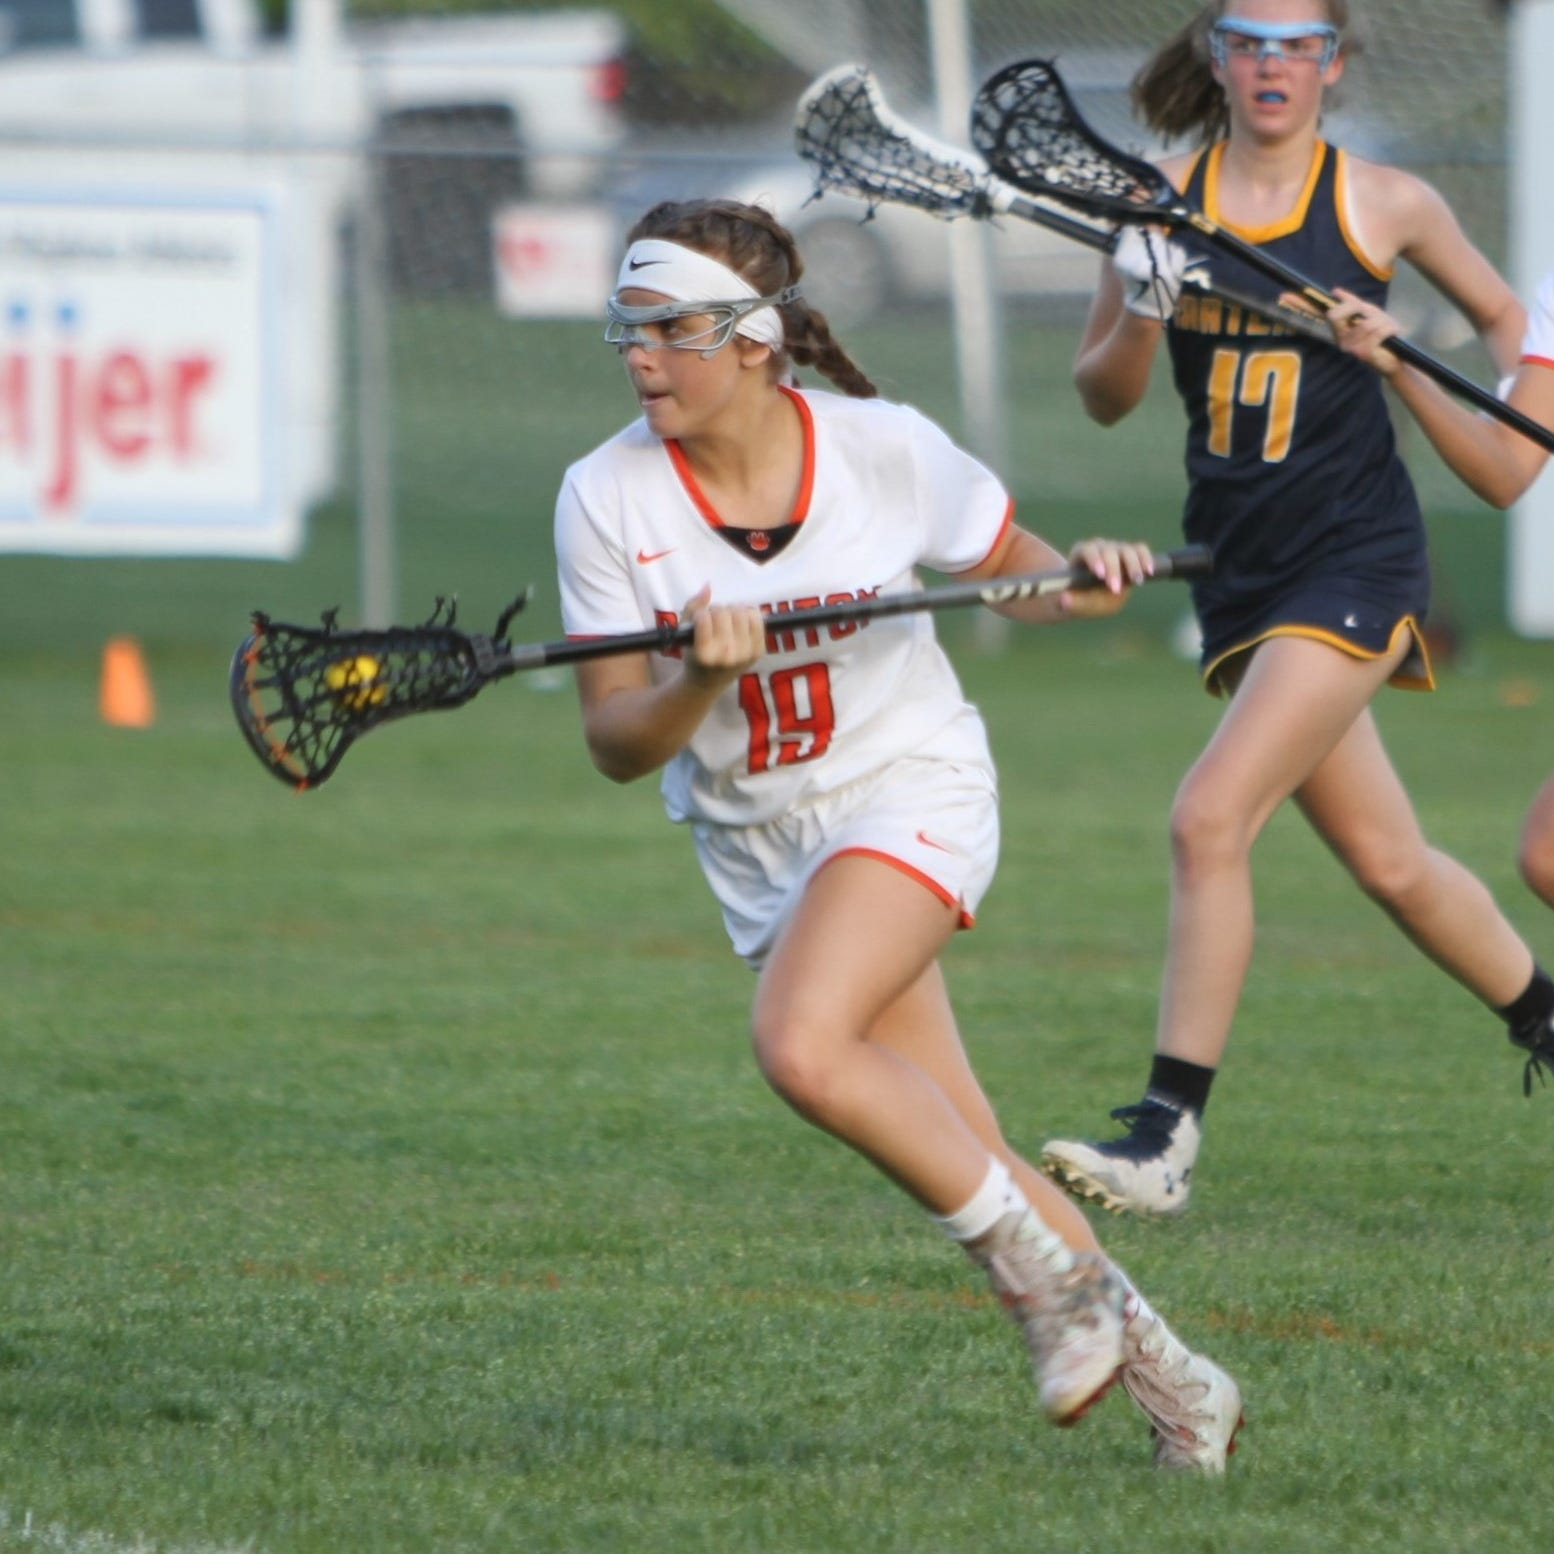 Roundup: Brighton wins semifinal rematch in girls lacrosse opener